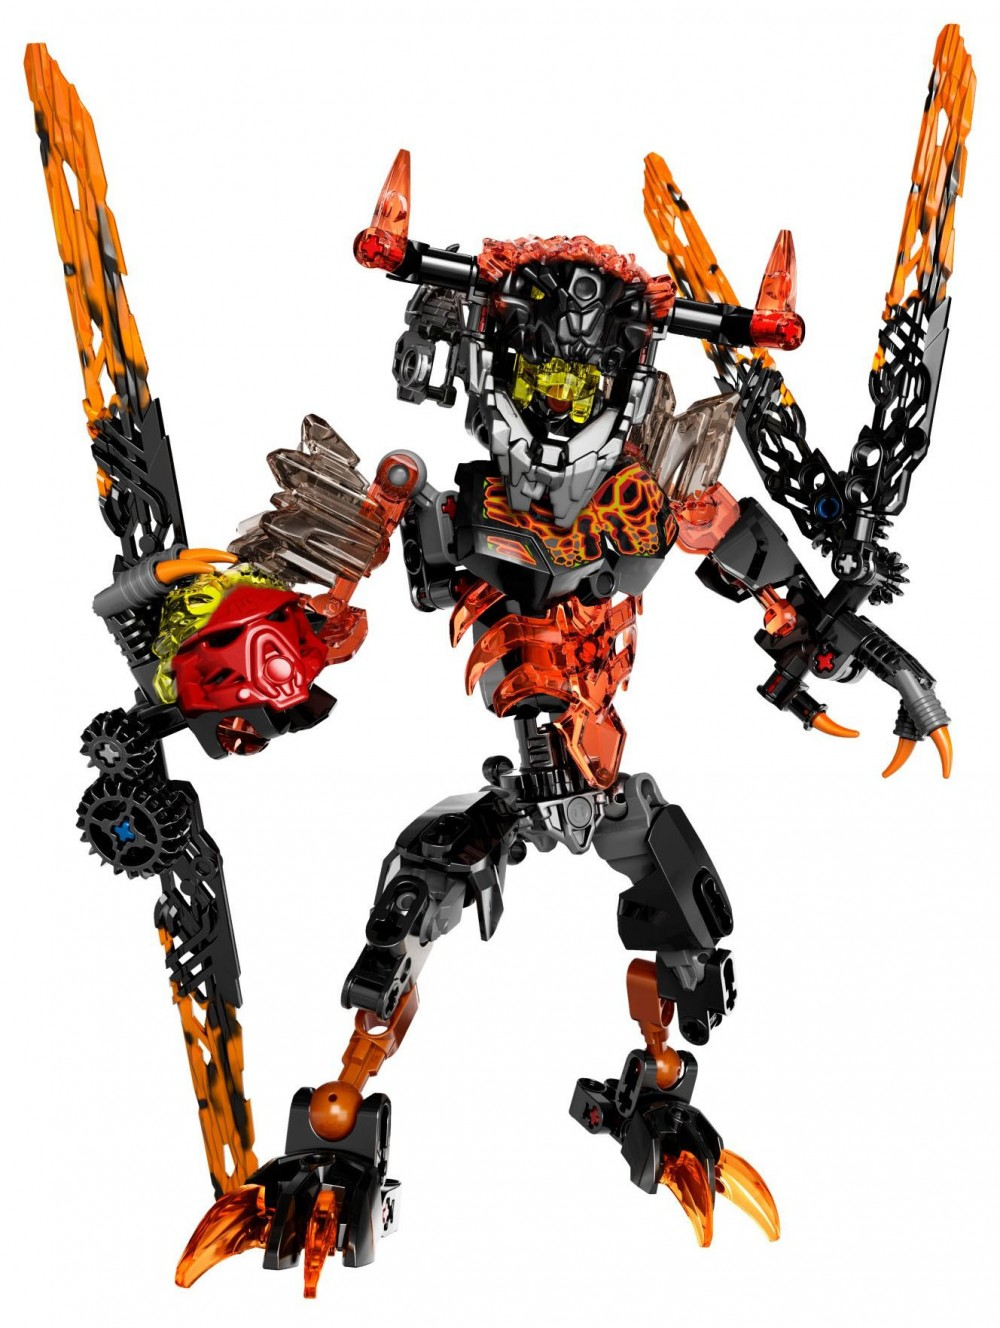 LEGO Bionicle 71313 - La bête de lave - photo 3